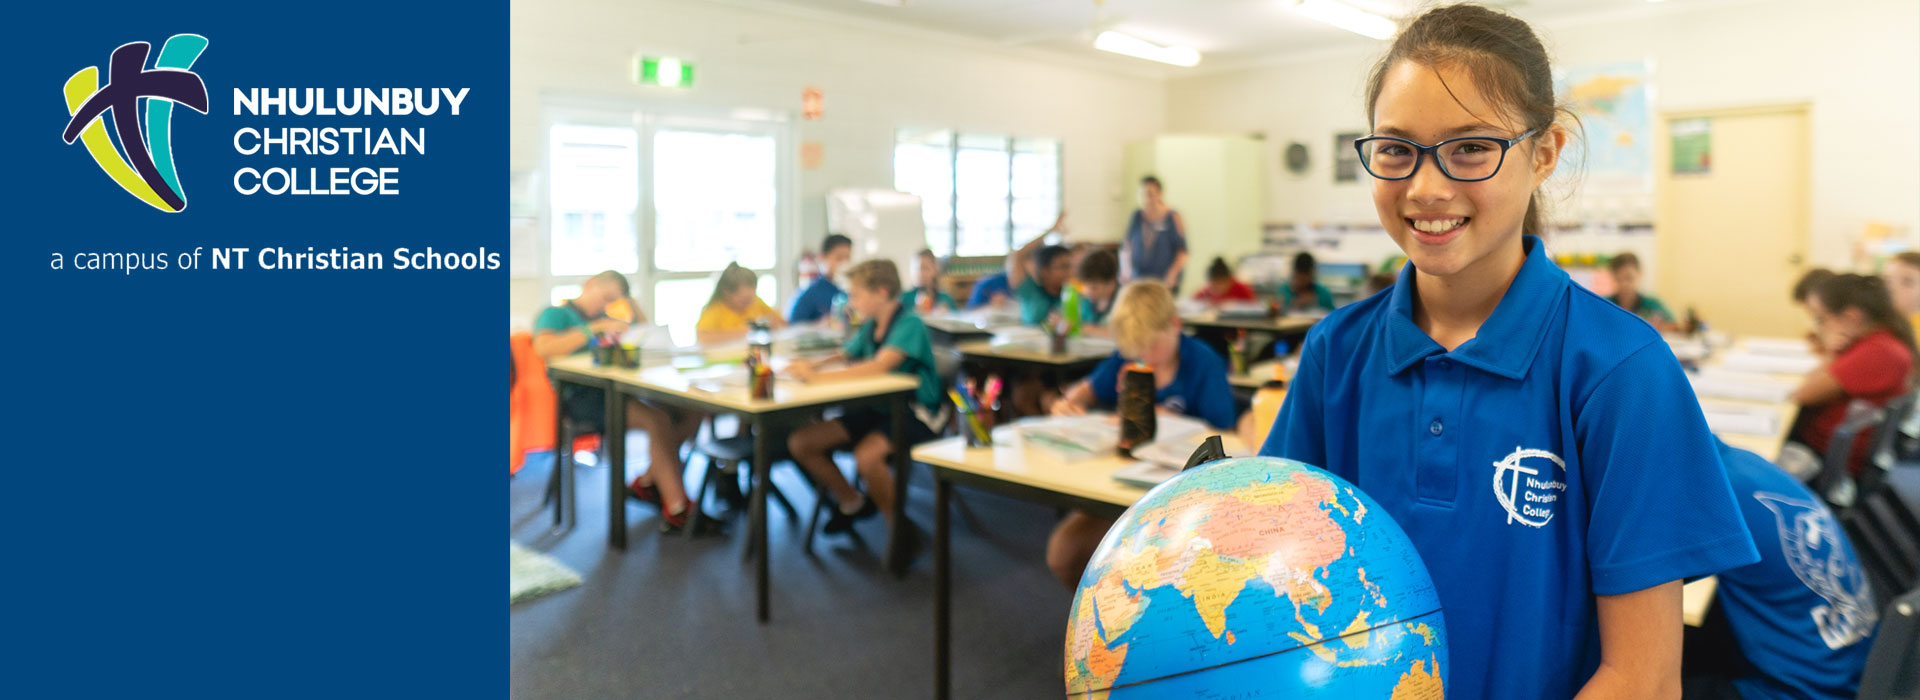 nhulunbuy christian college private school in nhulunbuy gove